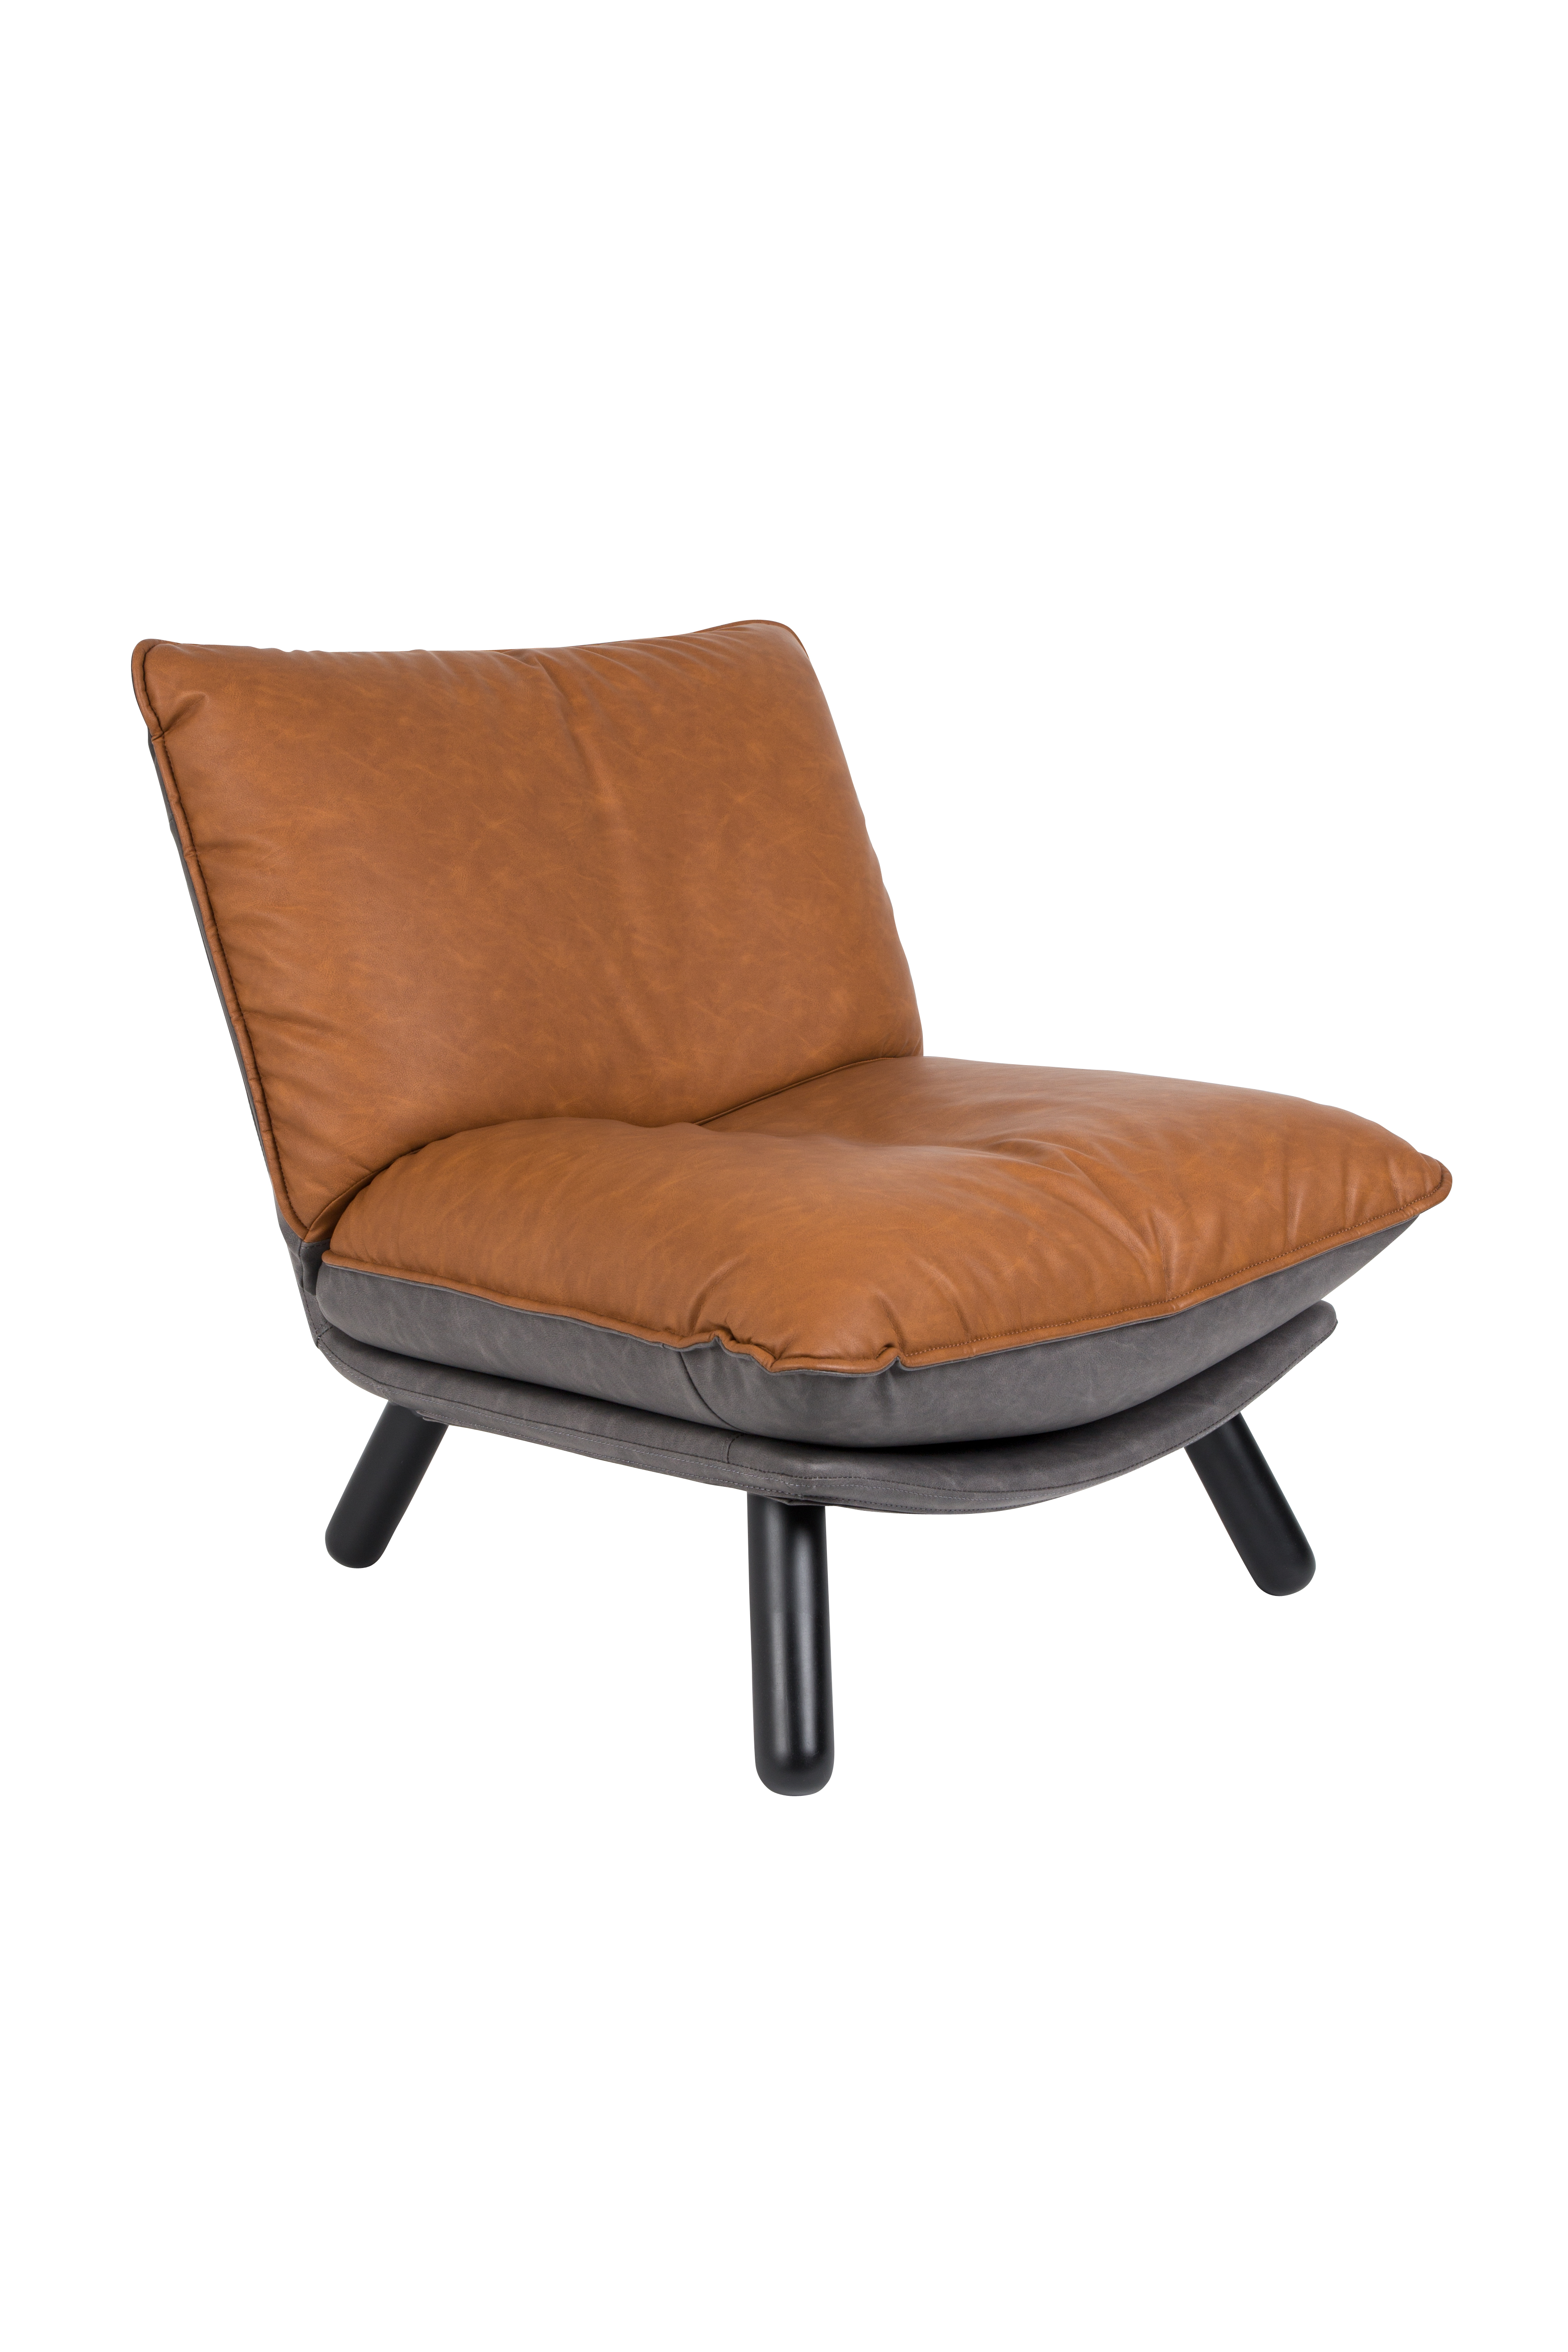 Zuiver Lounge Stoel.Zuiver Lounge Chair Lazy Sack Ll Brown Zu 3100043